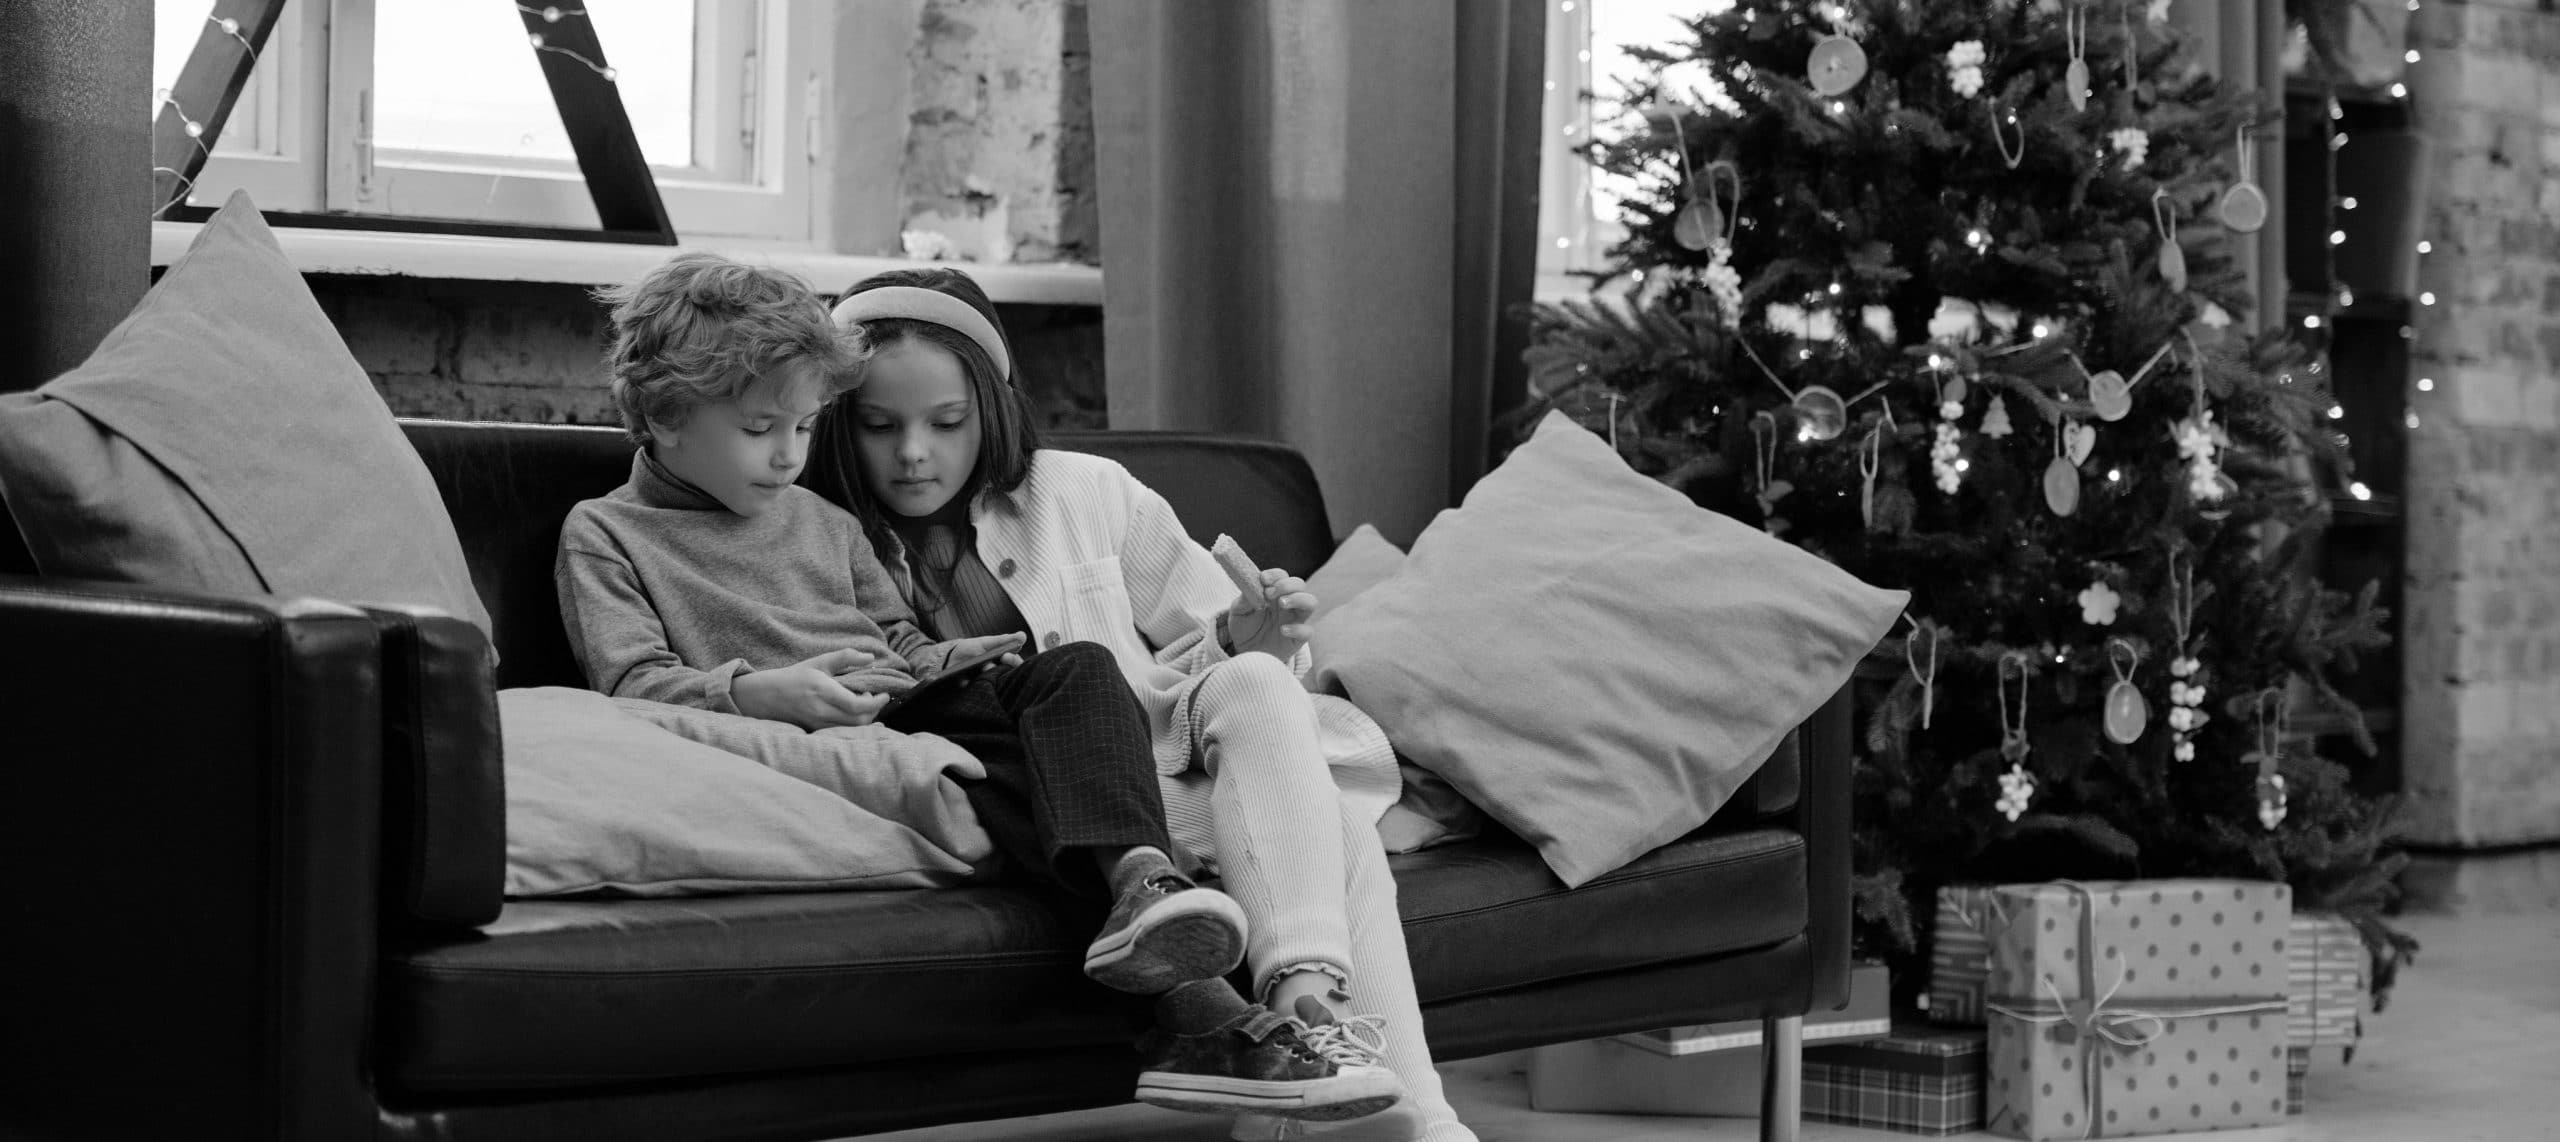 Catherine Leach Feature Article: Expert Tips for Seperated Families at Christmas